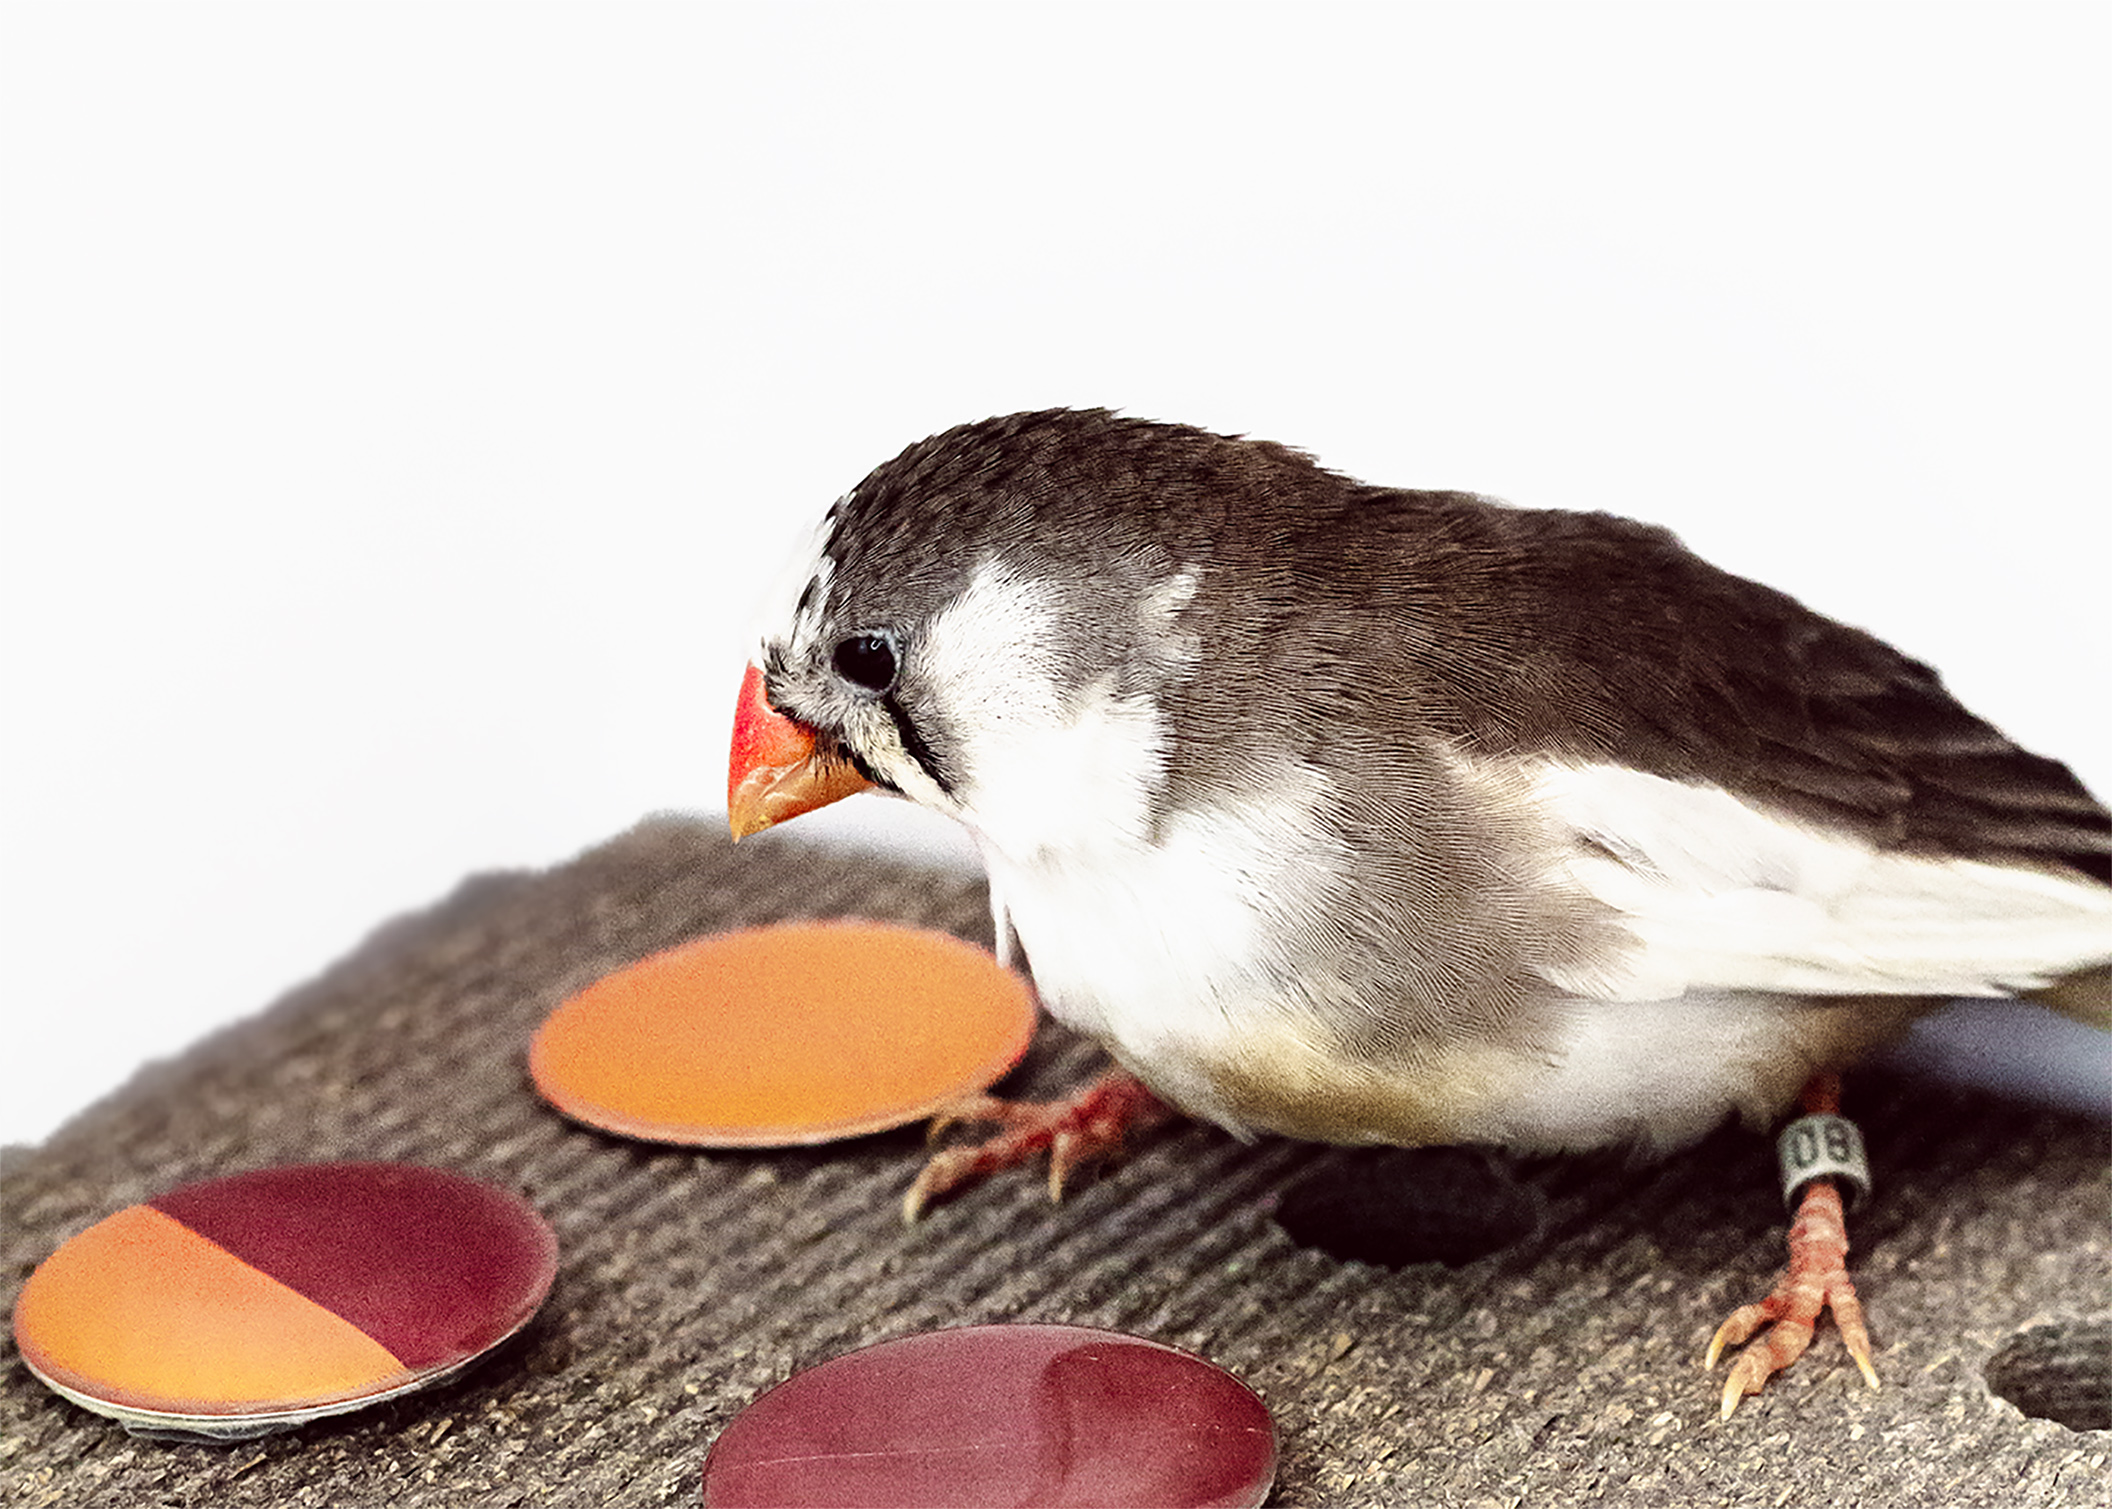 A new study found female zebra finches are able to distinguish different shades of orange or red and when it comes to the ideal mate.